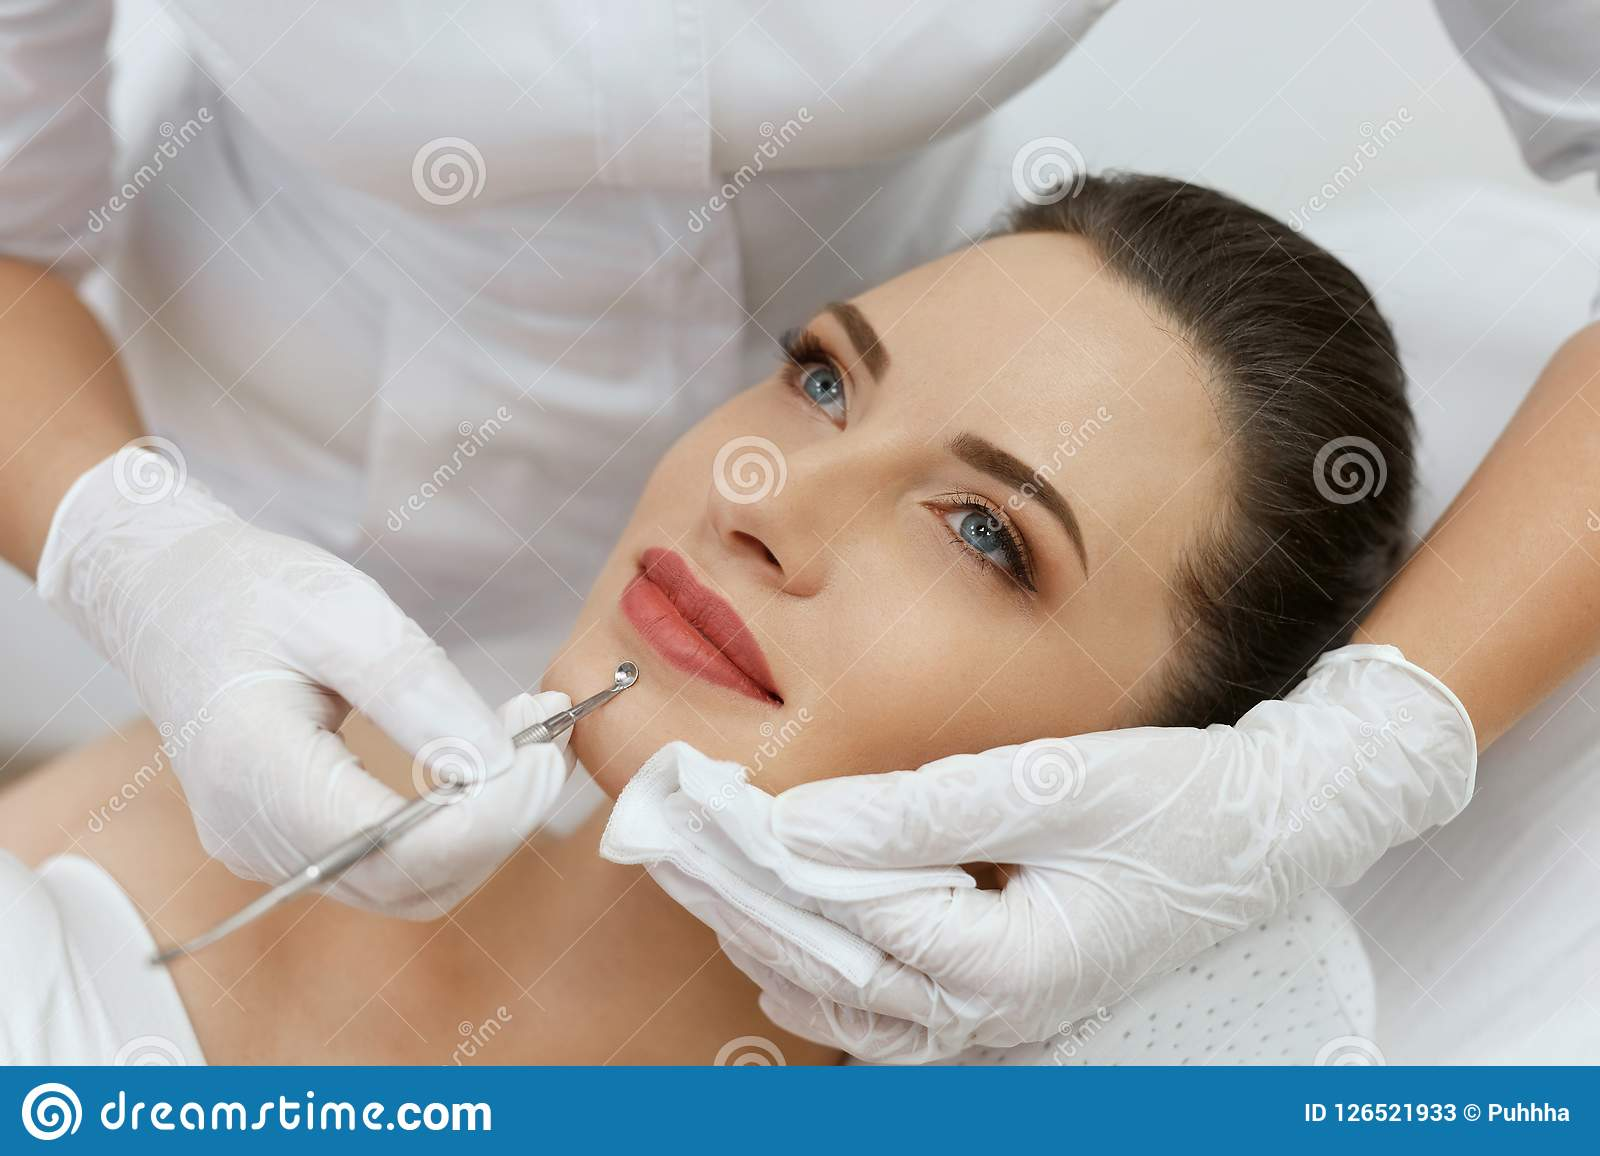 Mechanical cleansing of the face: what it is, description of the procedure, contraindications 97